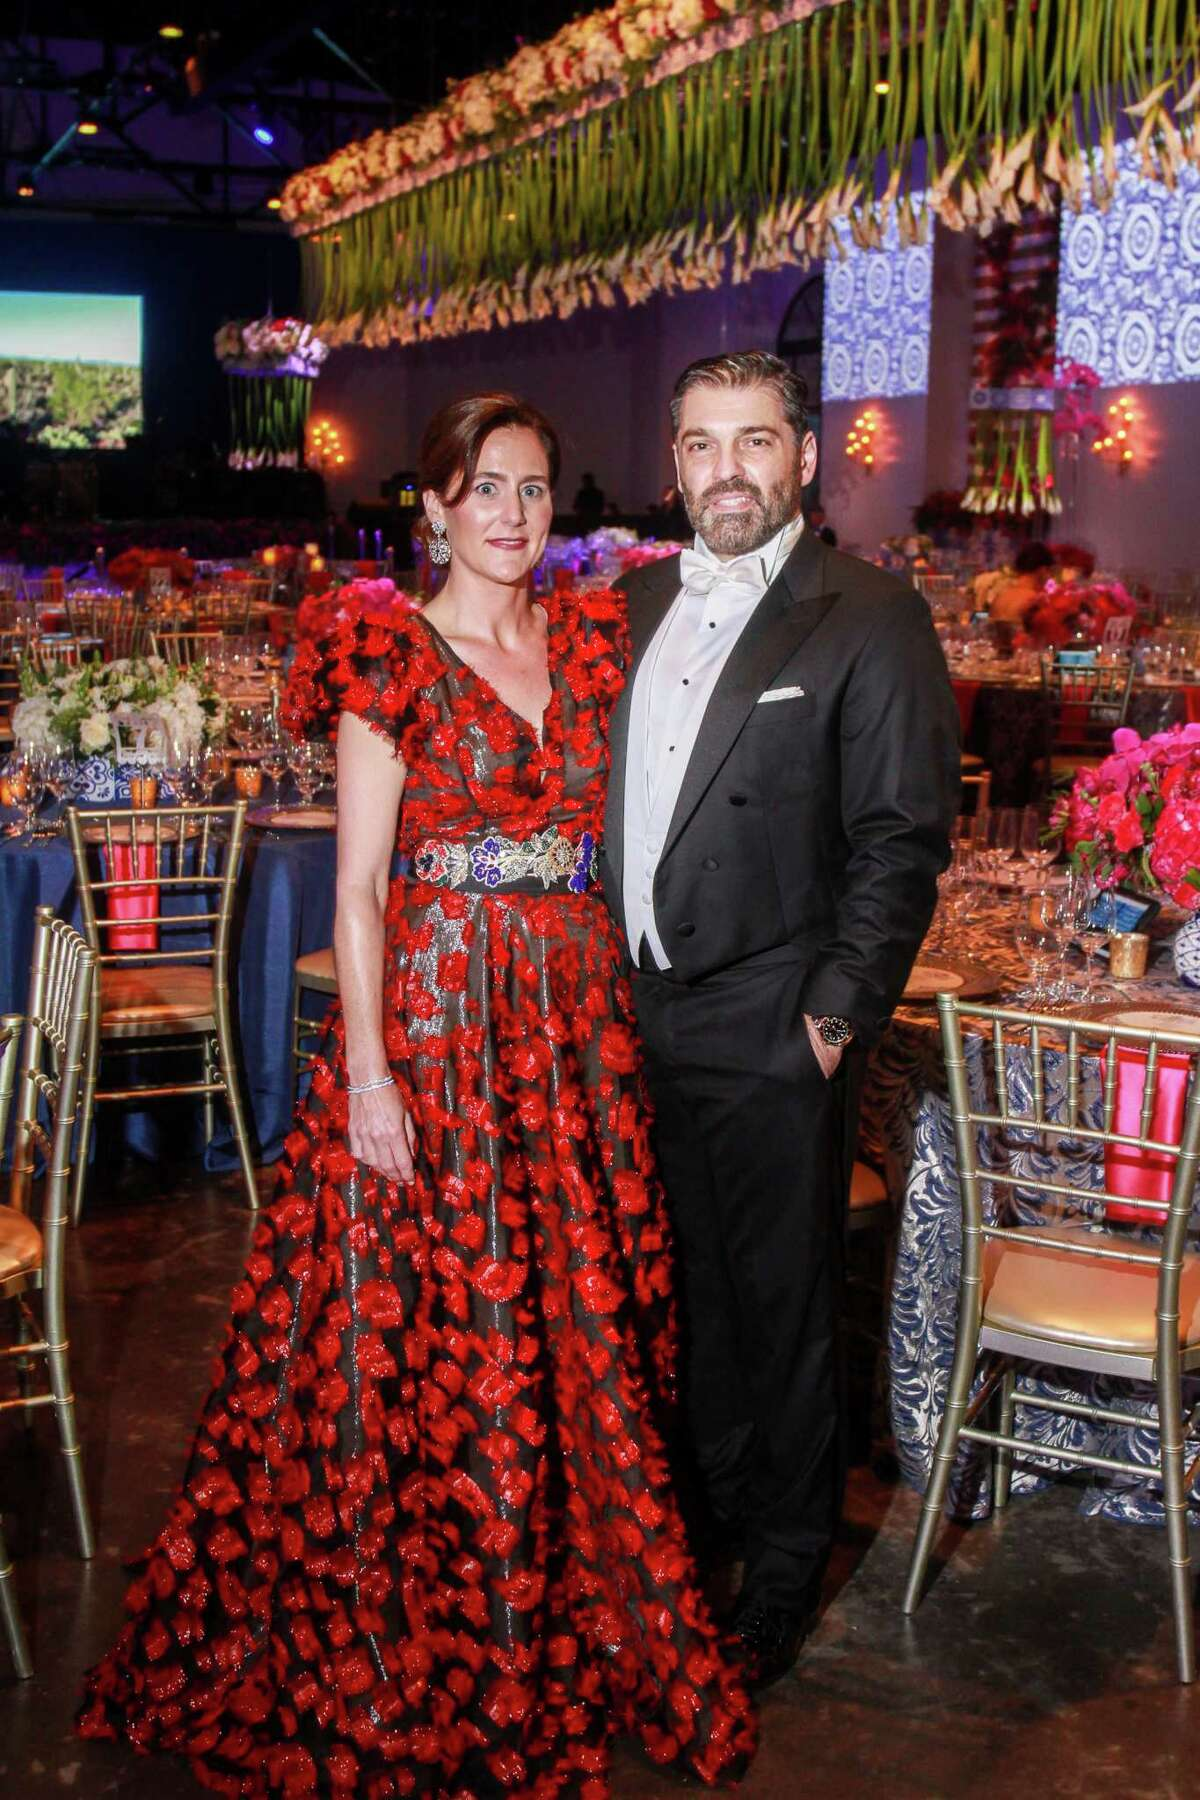 Chairs Marcia and Alfredo Vilas at the Opera Ball.